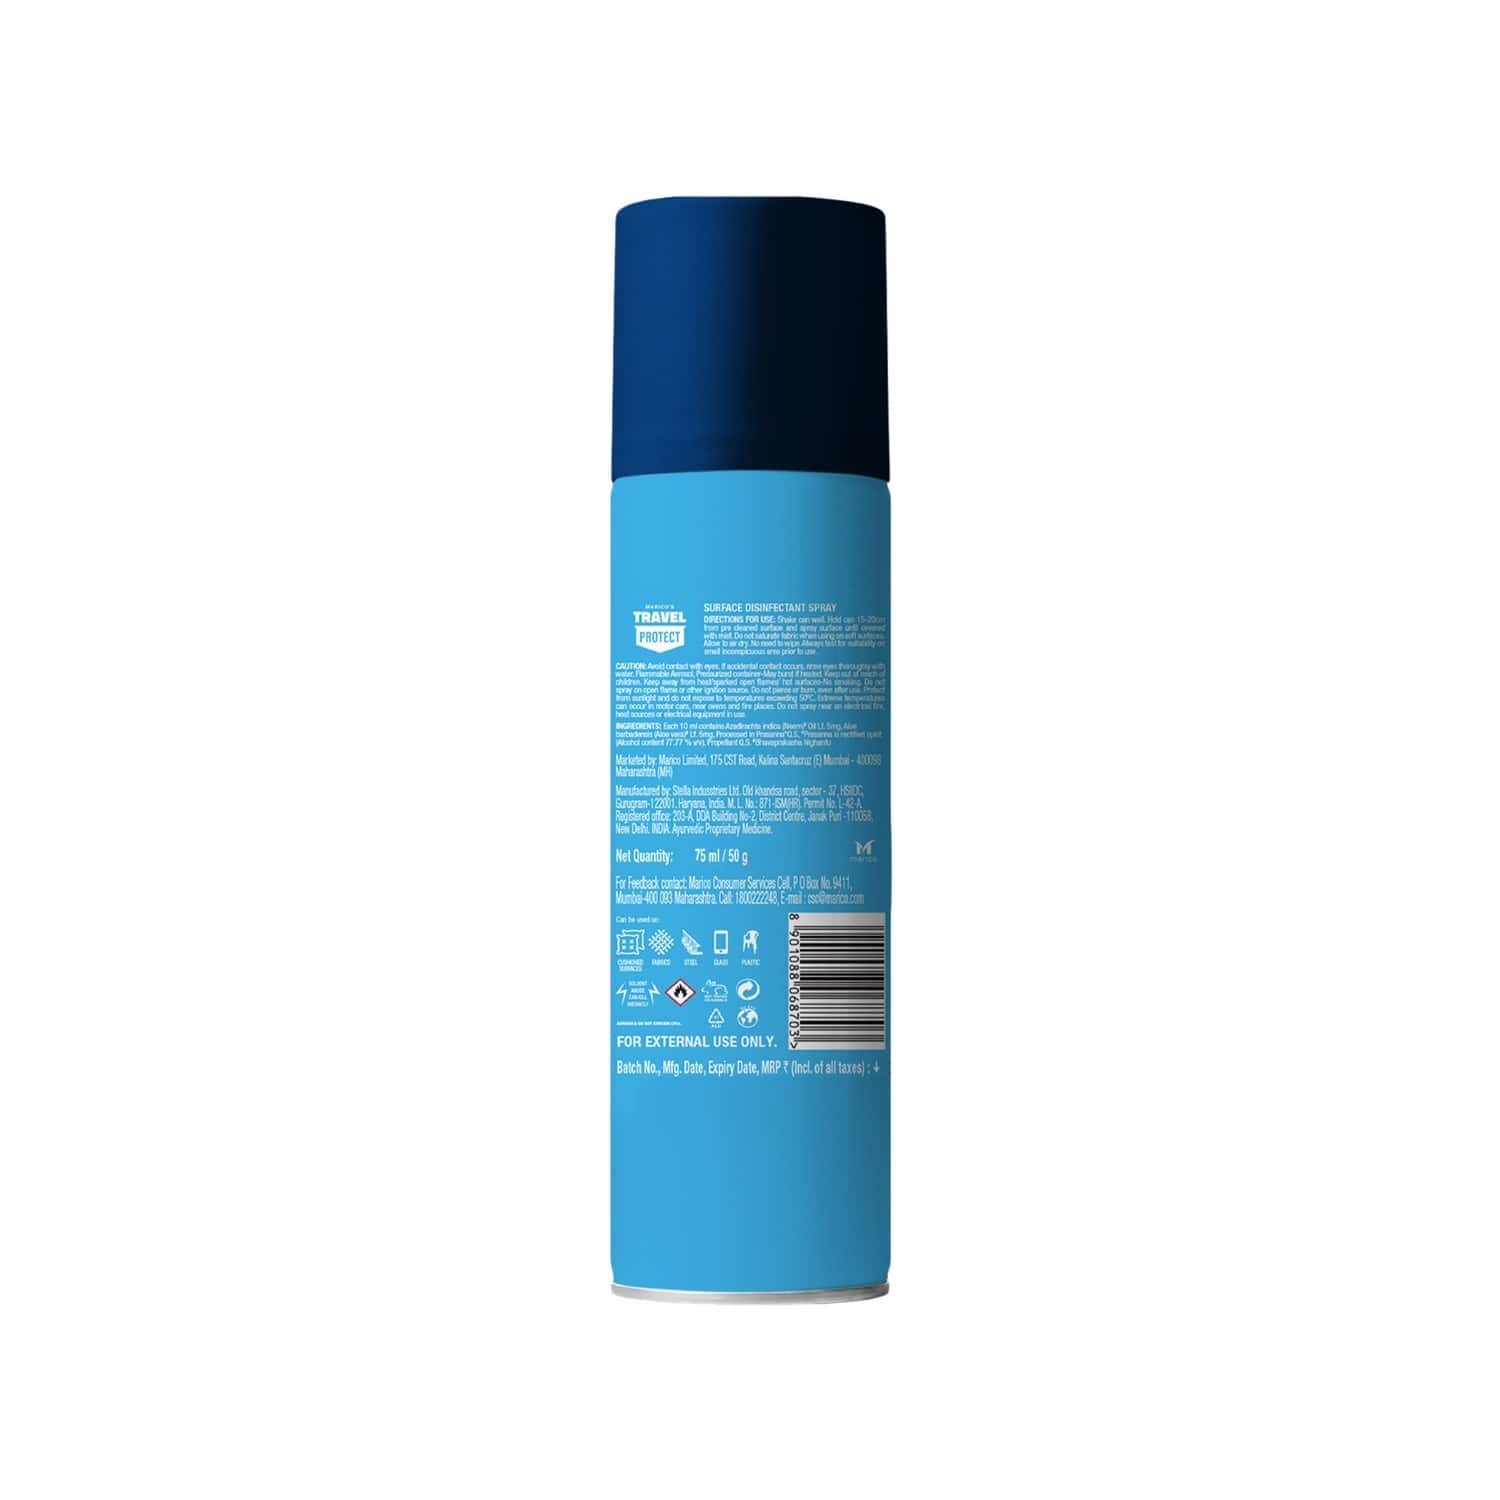 Marico's Travel Protect Surface Disinfectant Spray - 75 Ml